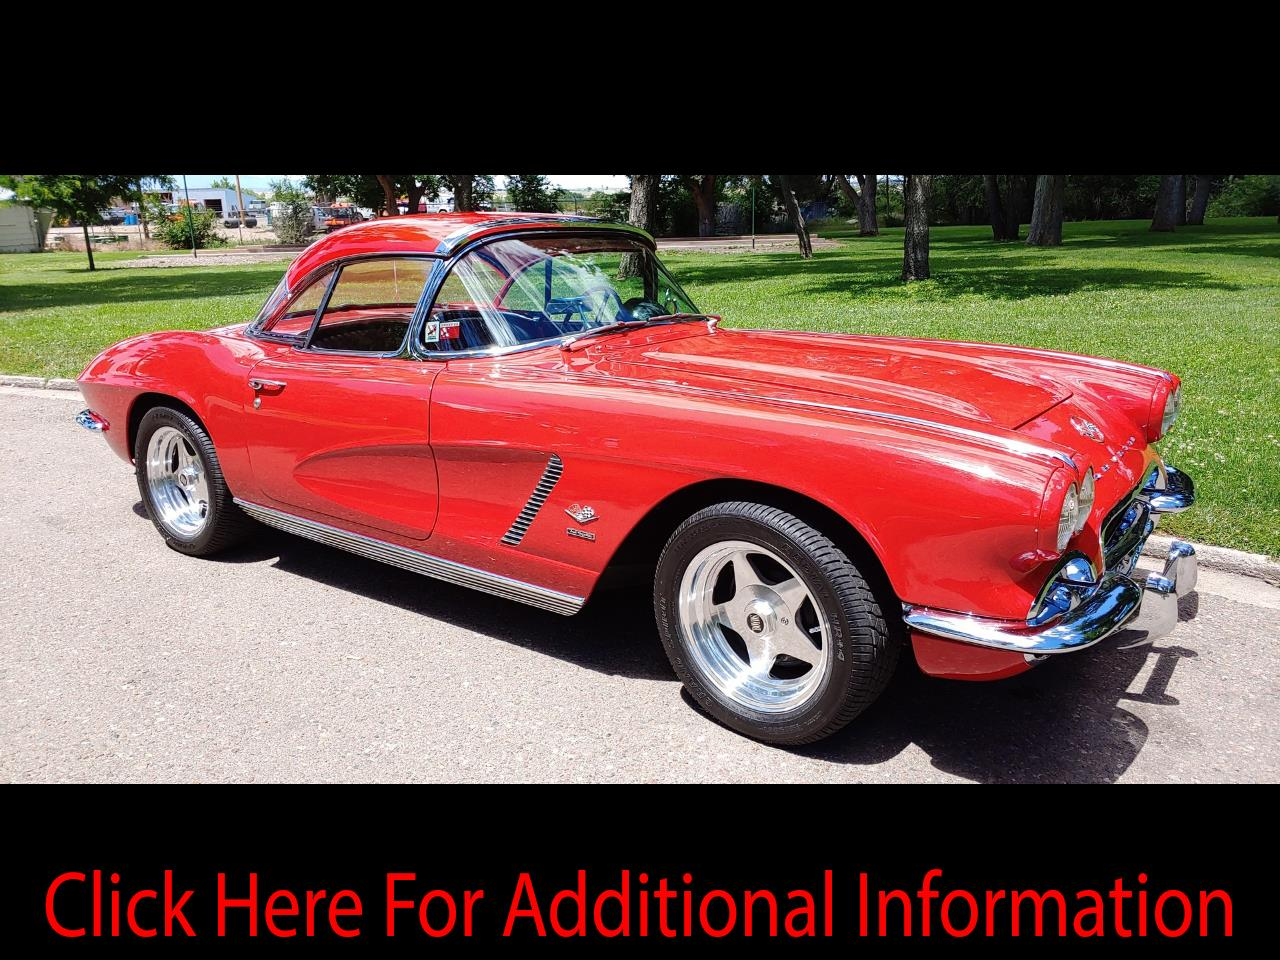 1962 Chevrolet Corvette 2dr Hardtop photo